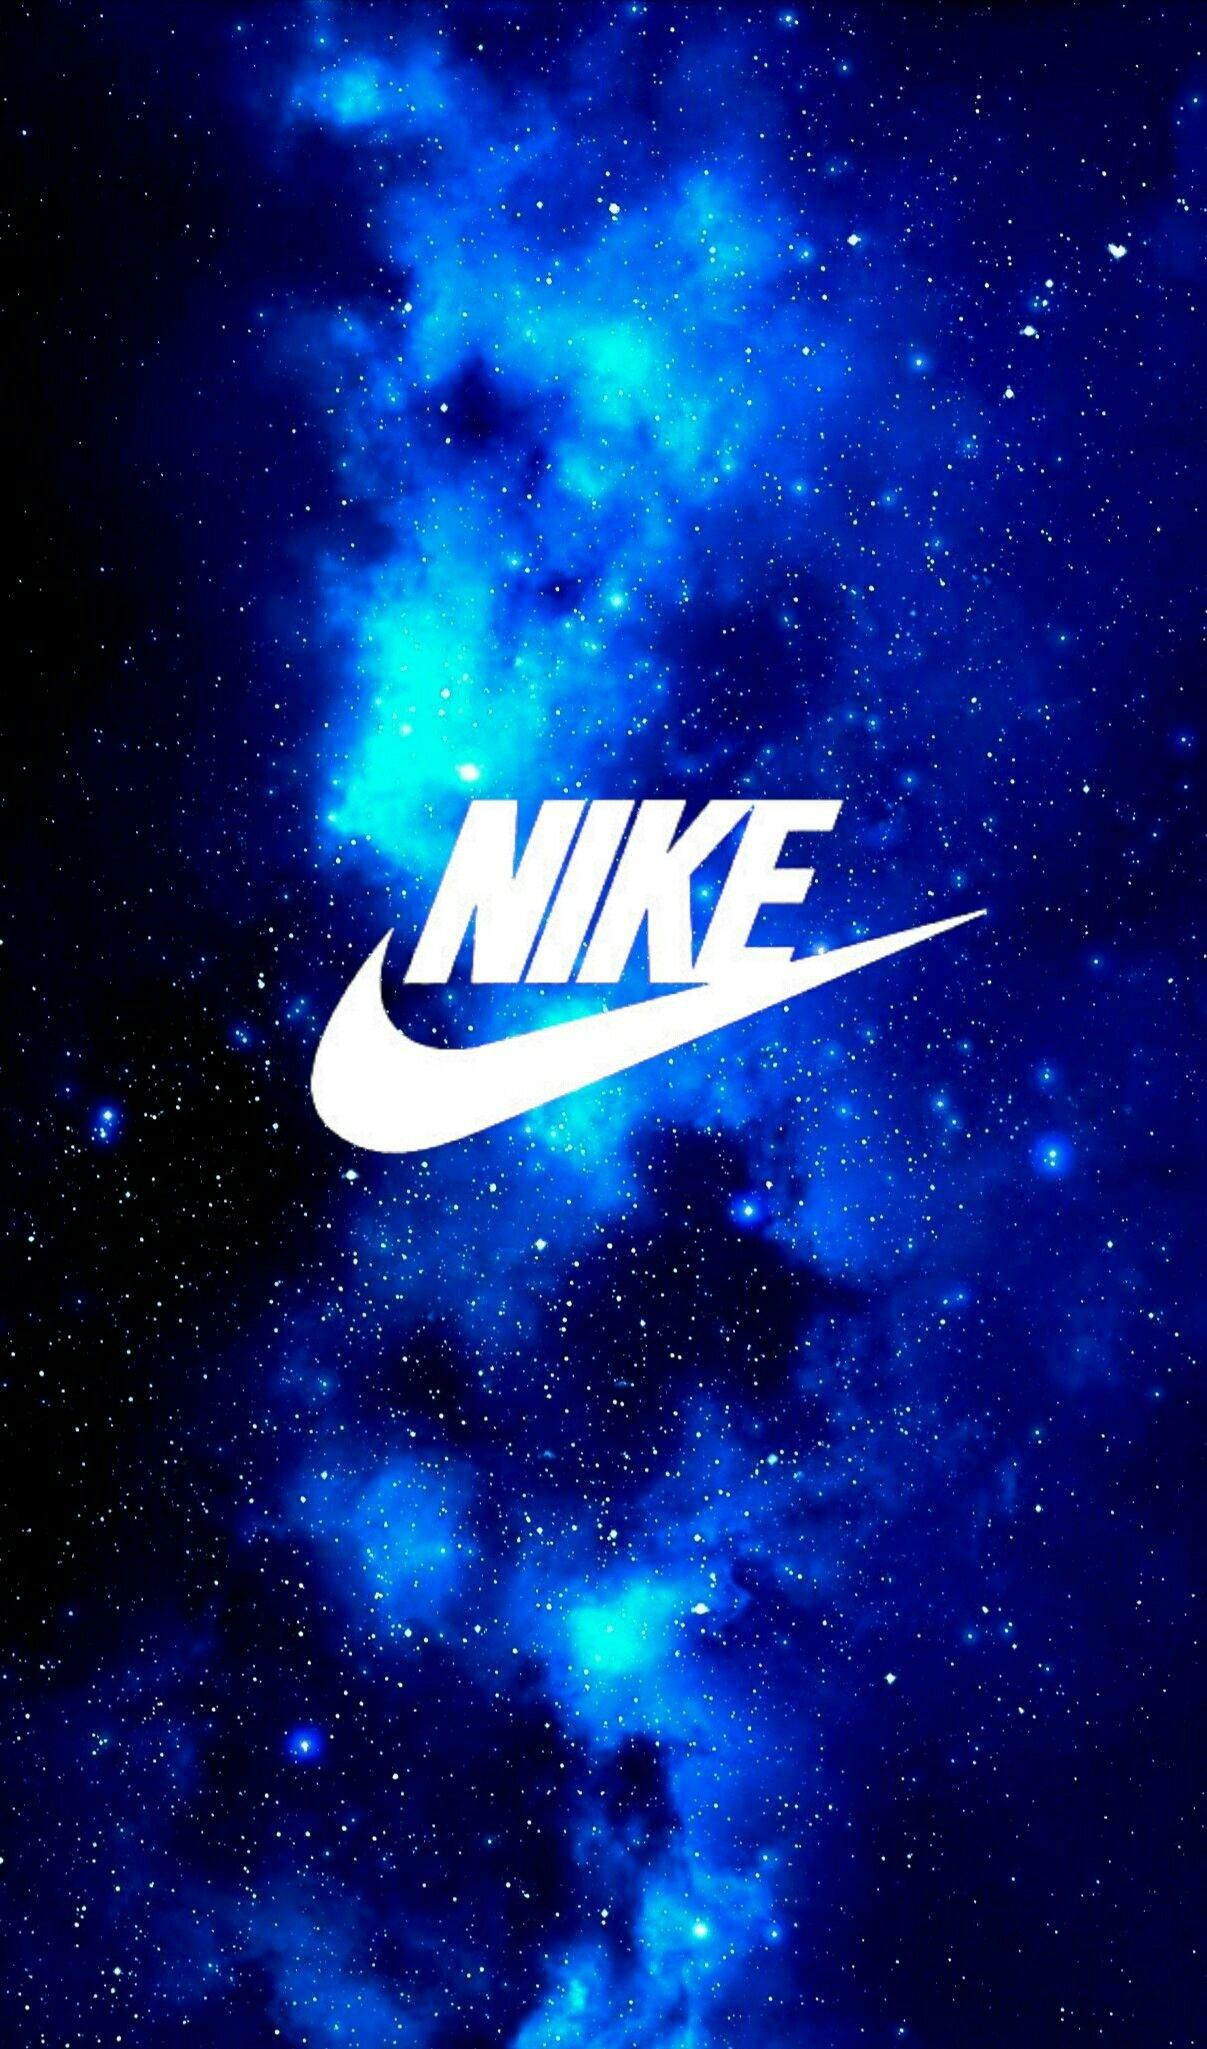 Blue Nike Wallpaper Wallpaper Nice In 2020 Nike Logo Wallpapers Nike Wallpaper Cool Nike Wallpapers